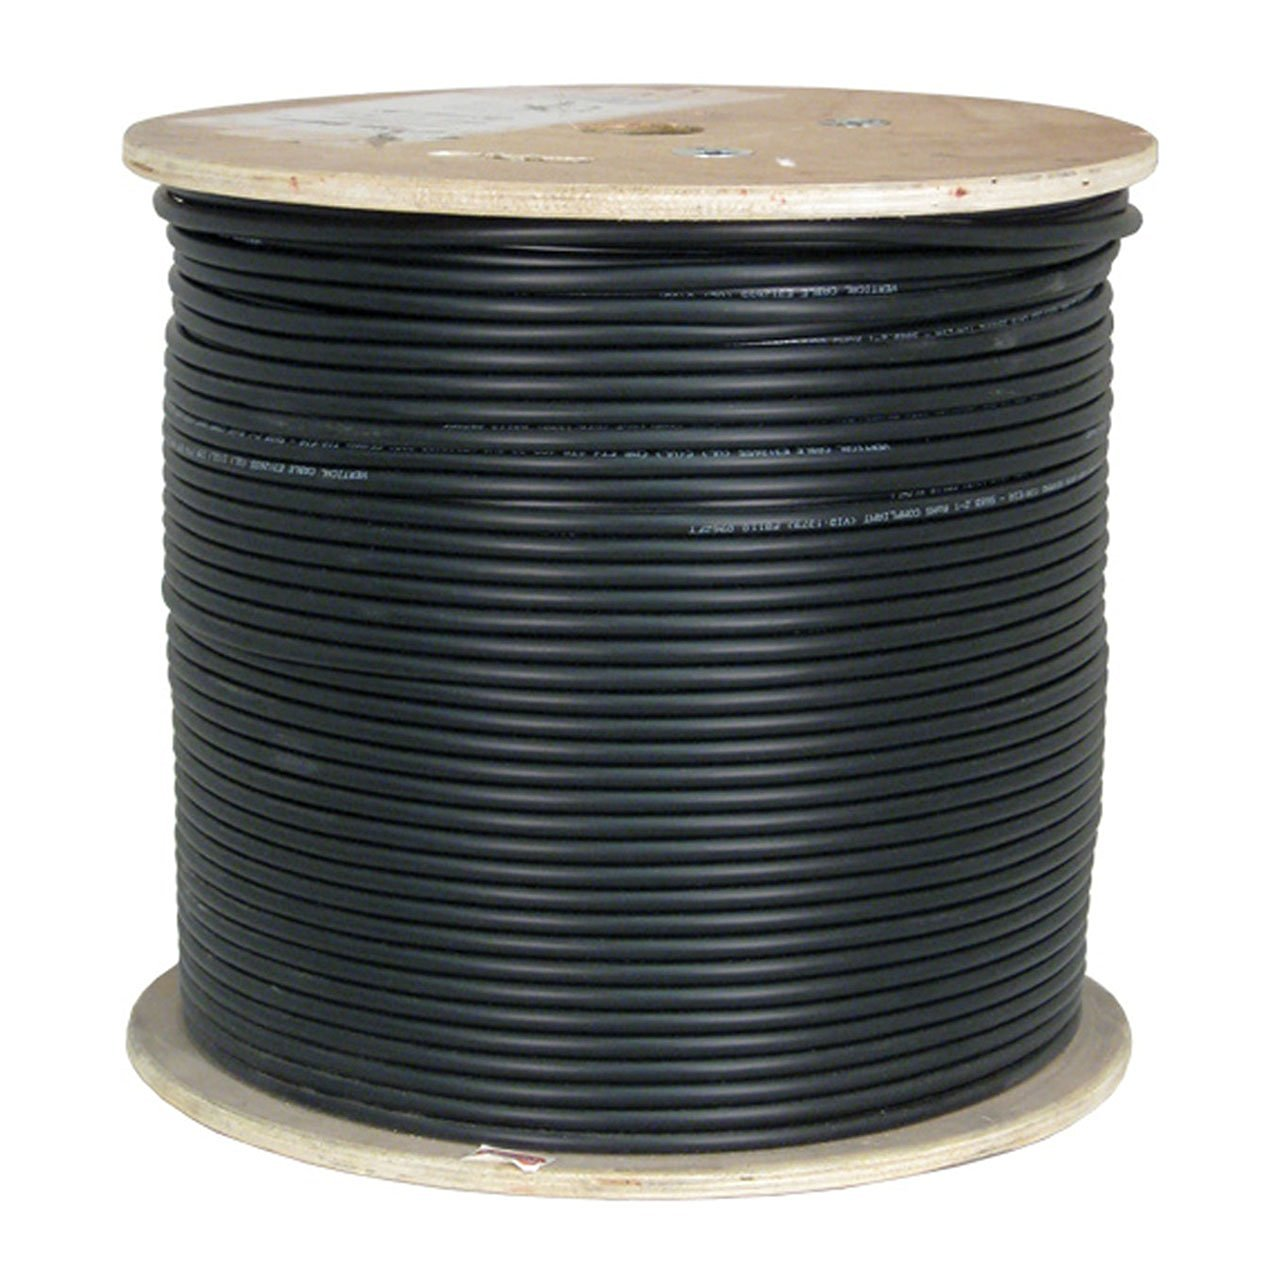 Vertical Cable Cat6, UTP, UV Jacket, Outdoor, CMX, 1000ft, Black, Bulk Ethernet Cable